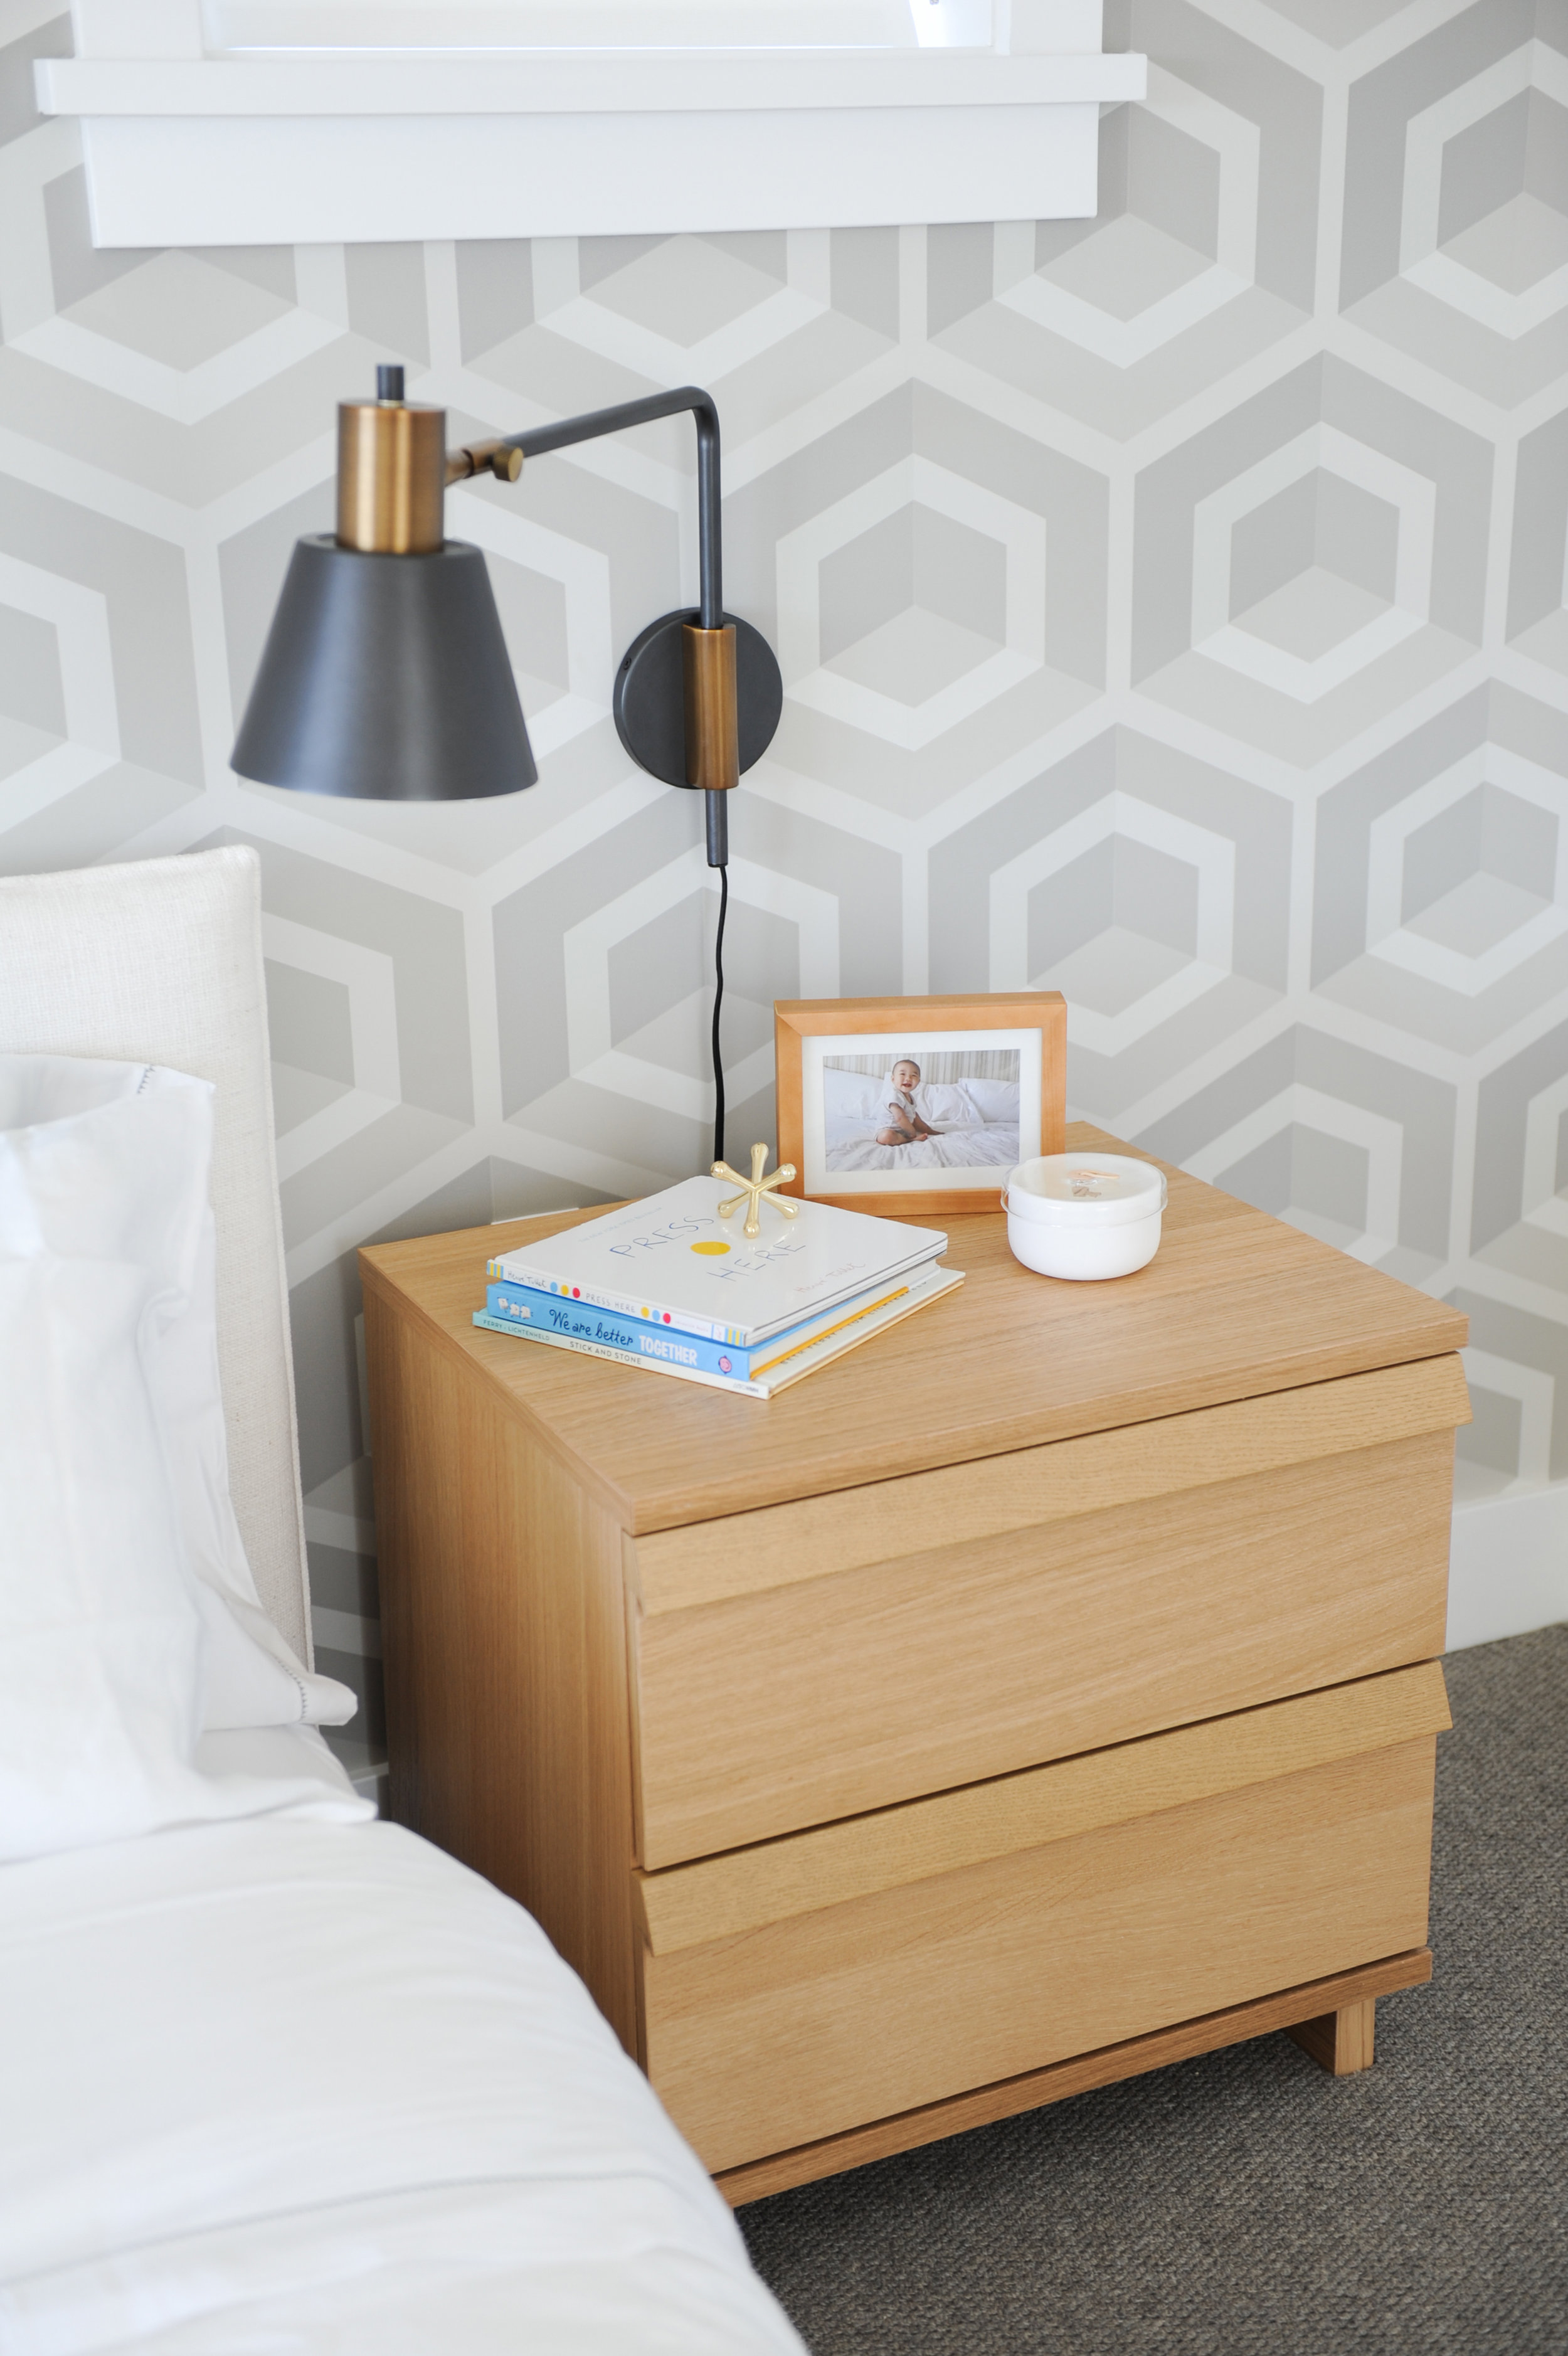 A brown wooden bedside table with a lamp, a book, a picture in a frame and a candle sat on top is directly underneath a windowsill.